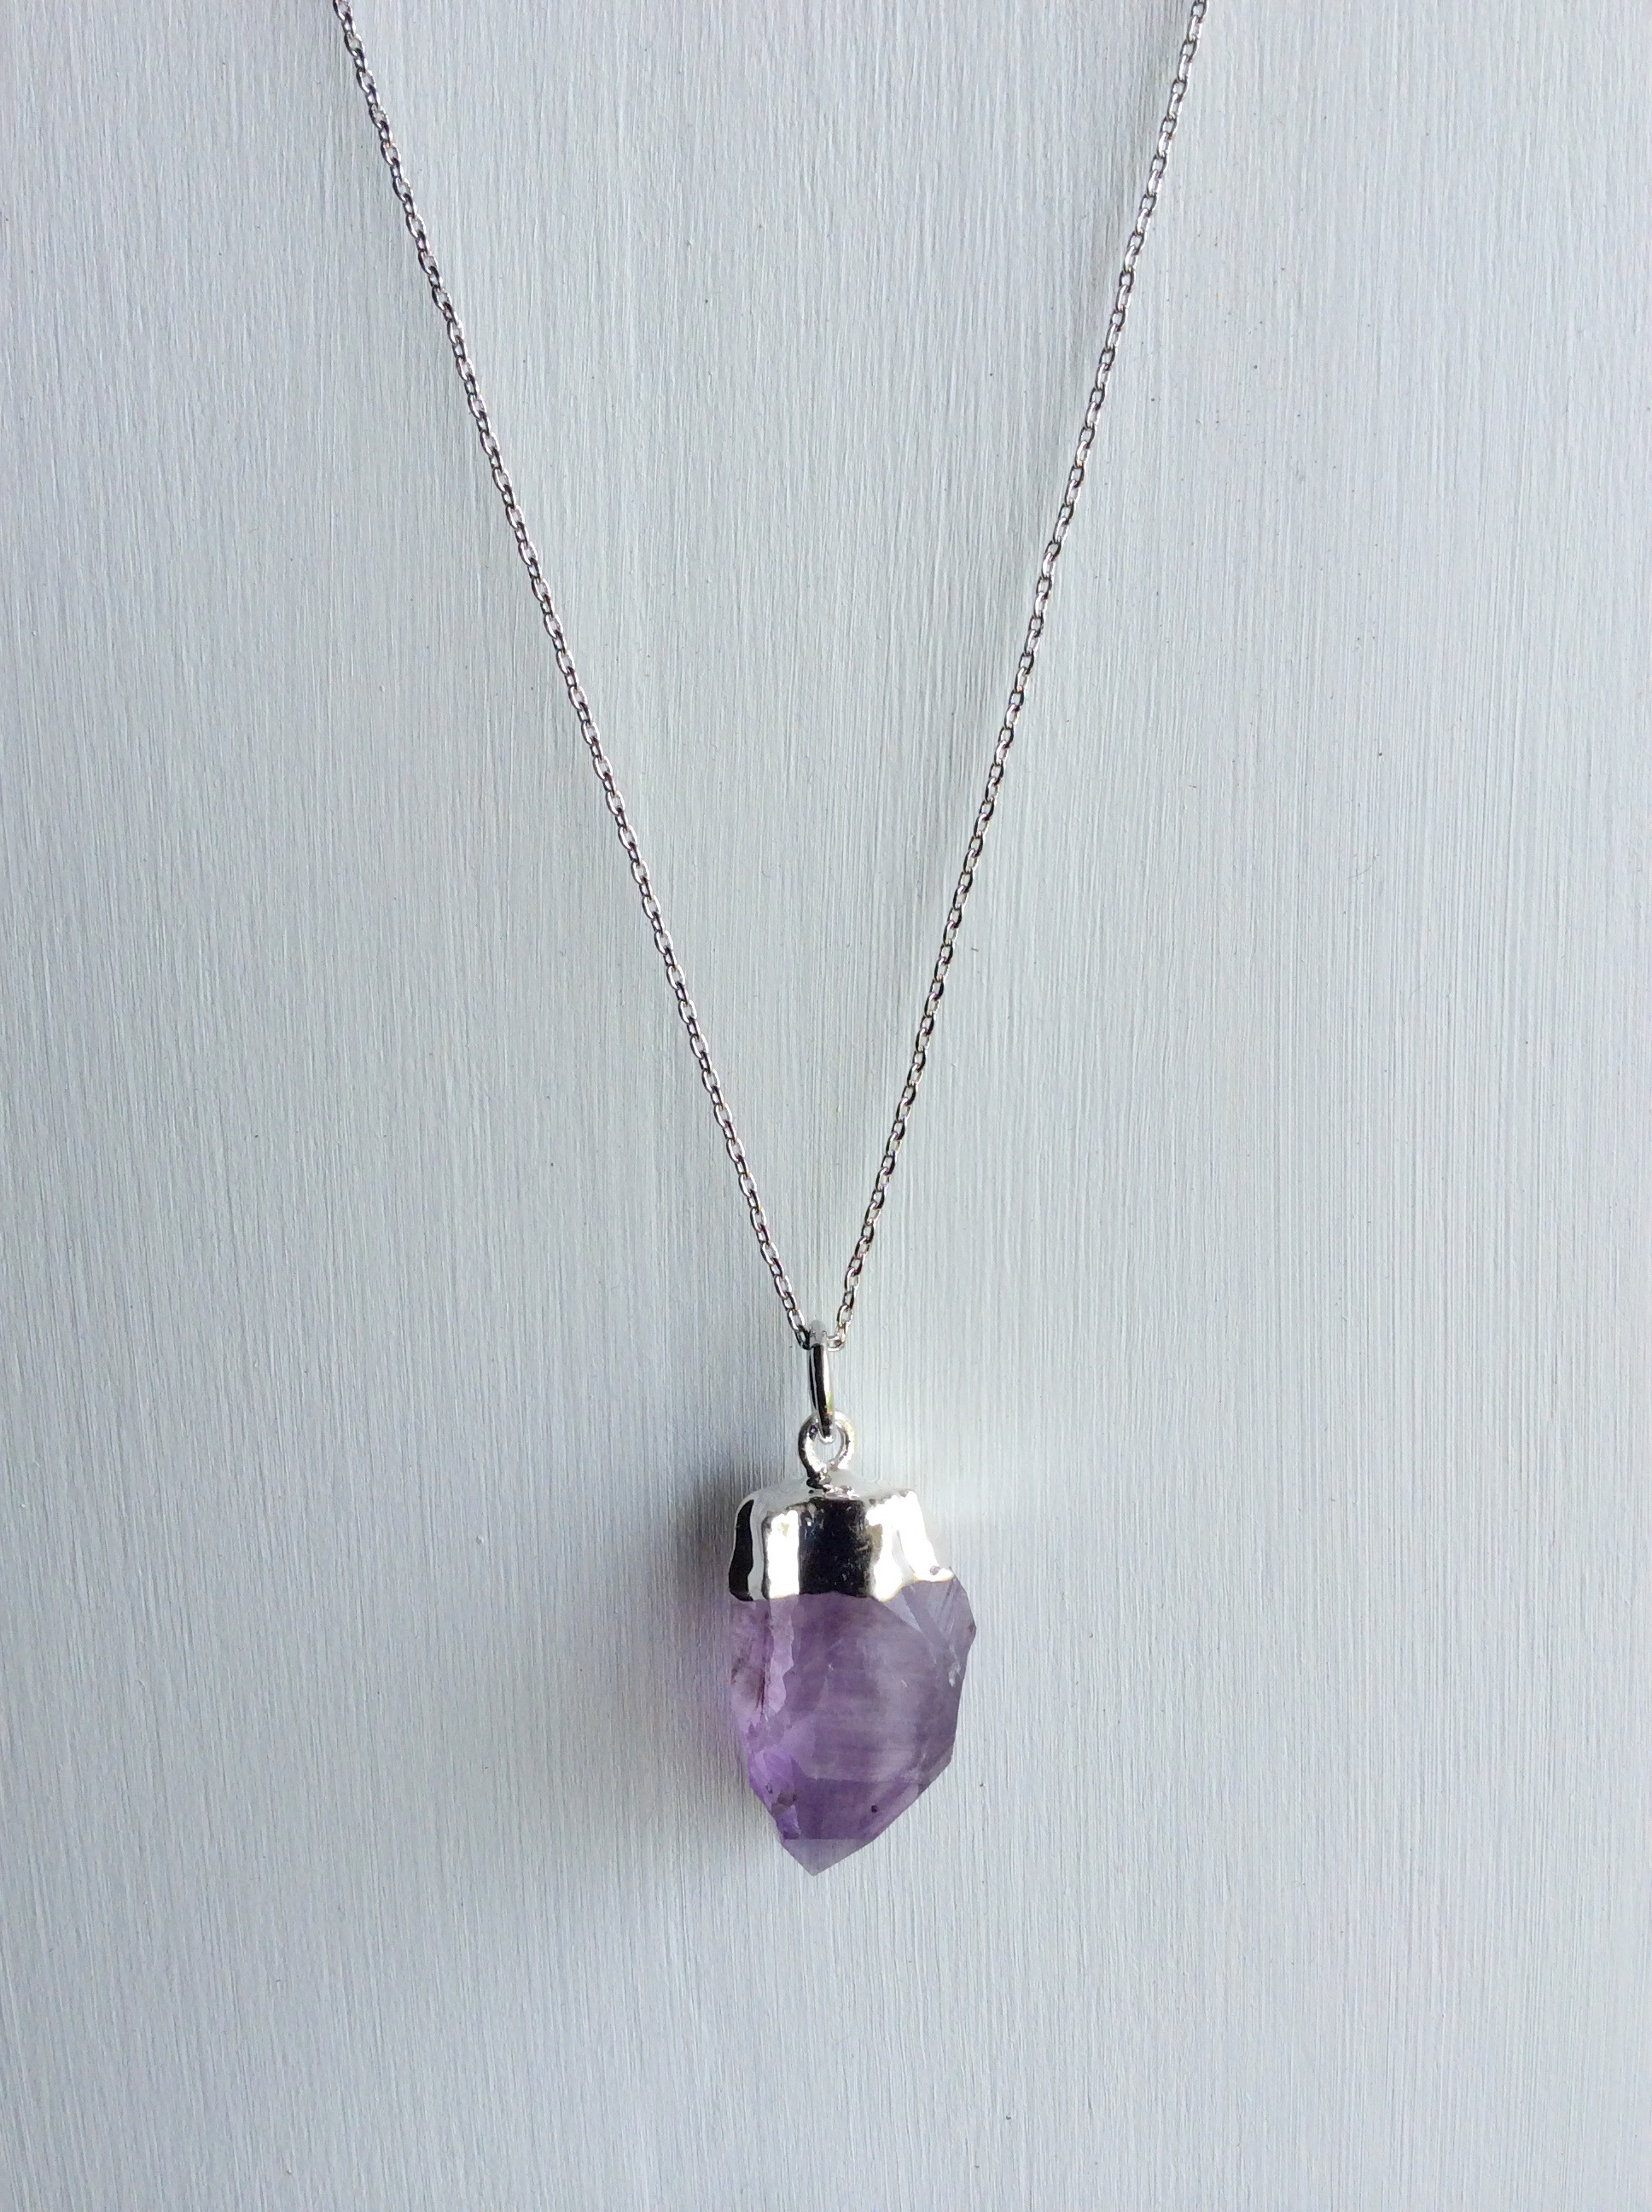 products rose raw amethyst taiga pendant image necklace